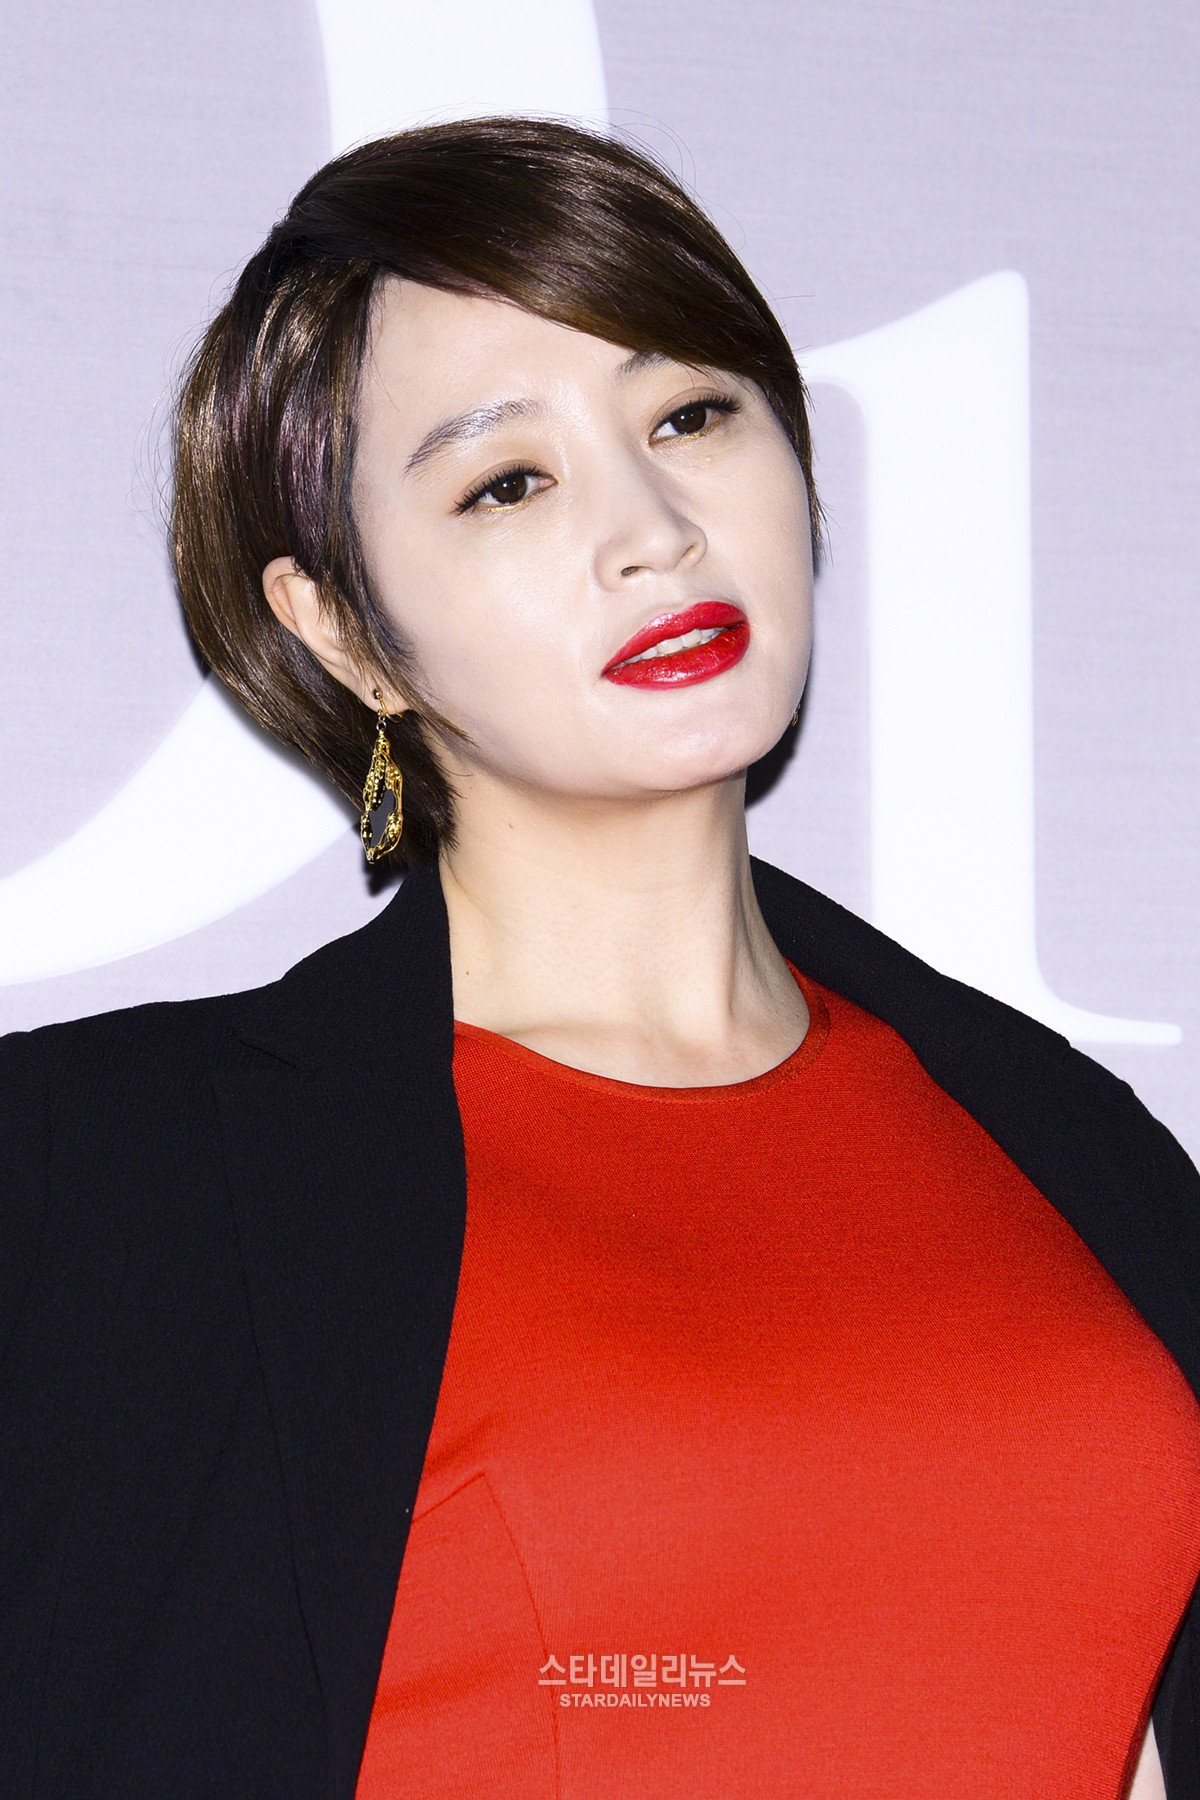 e Korea s Top Actresses Is Considering Quitting The